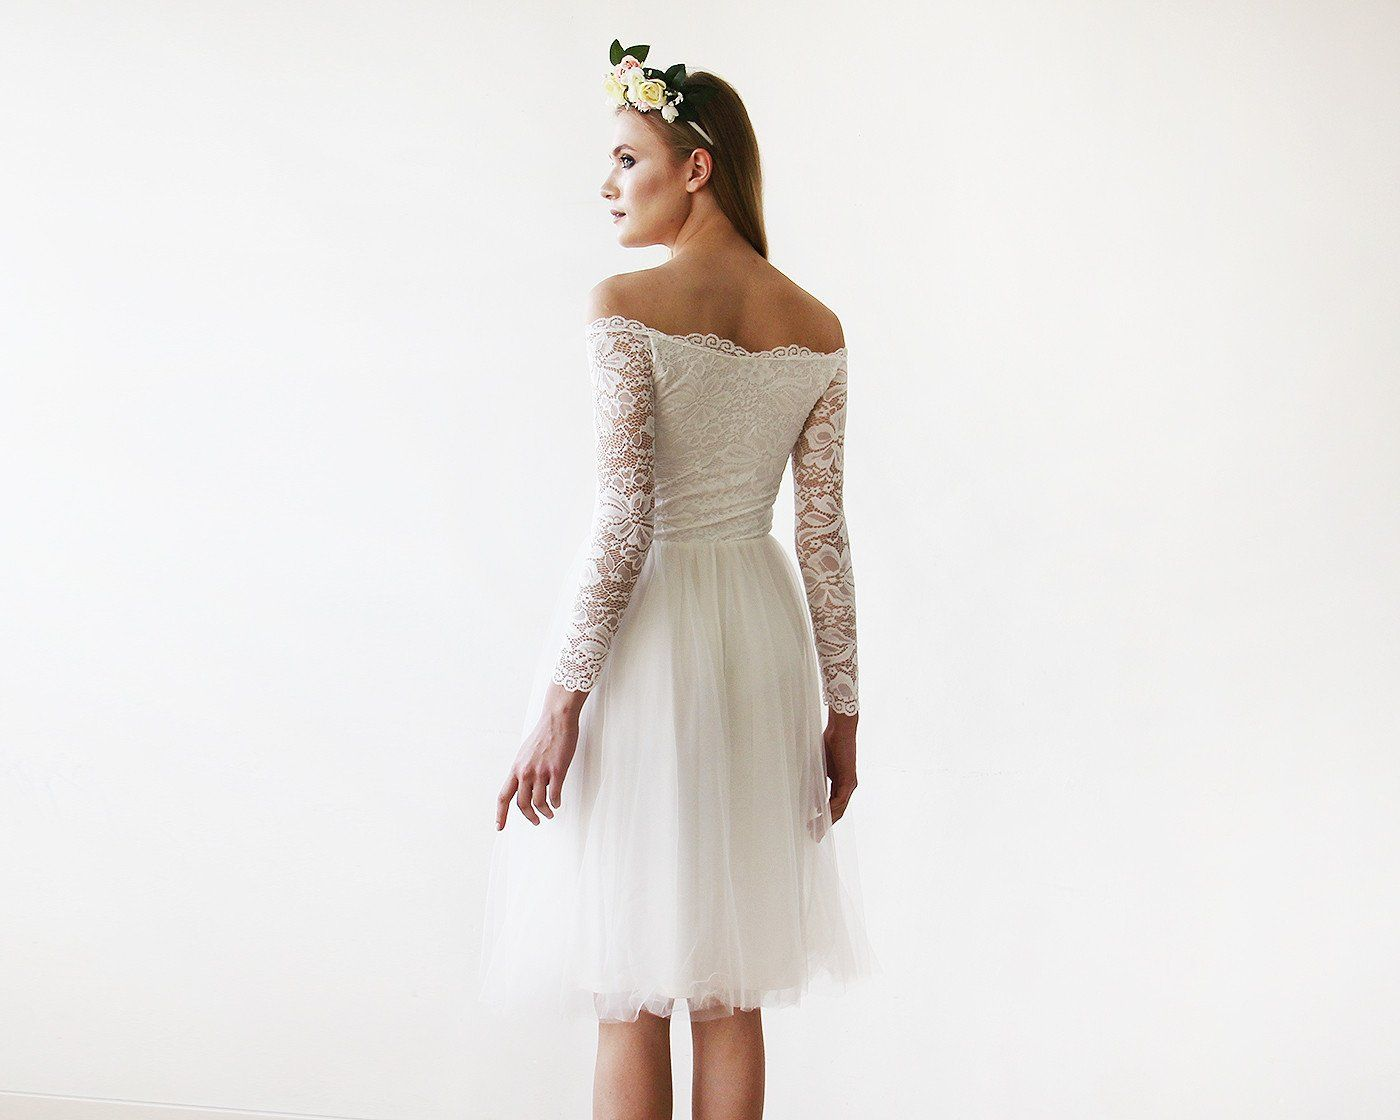 Off-The-Shoulder Ivory Lace and Tulle Wedding Midi Dress 1156 - Blushfashion